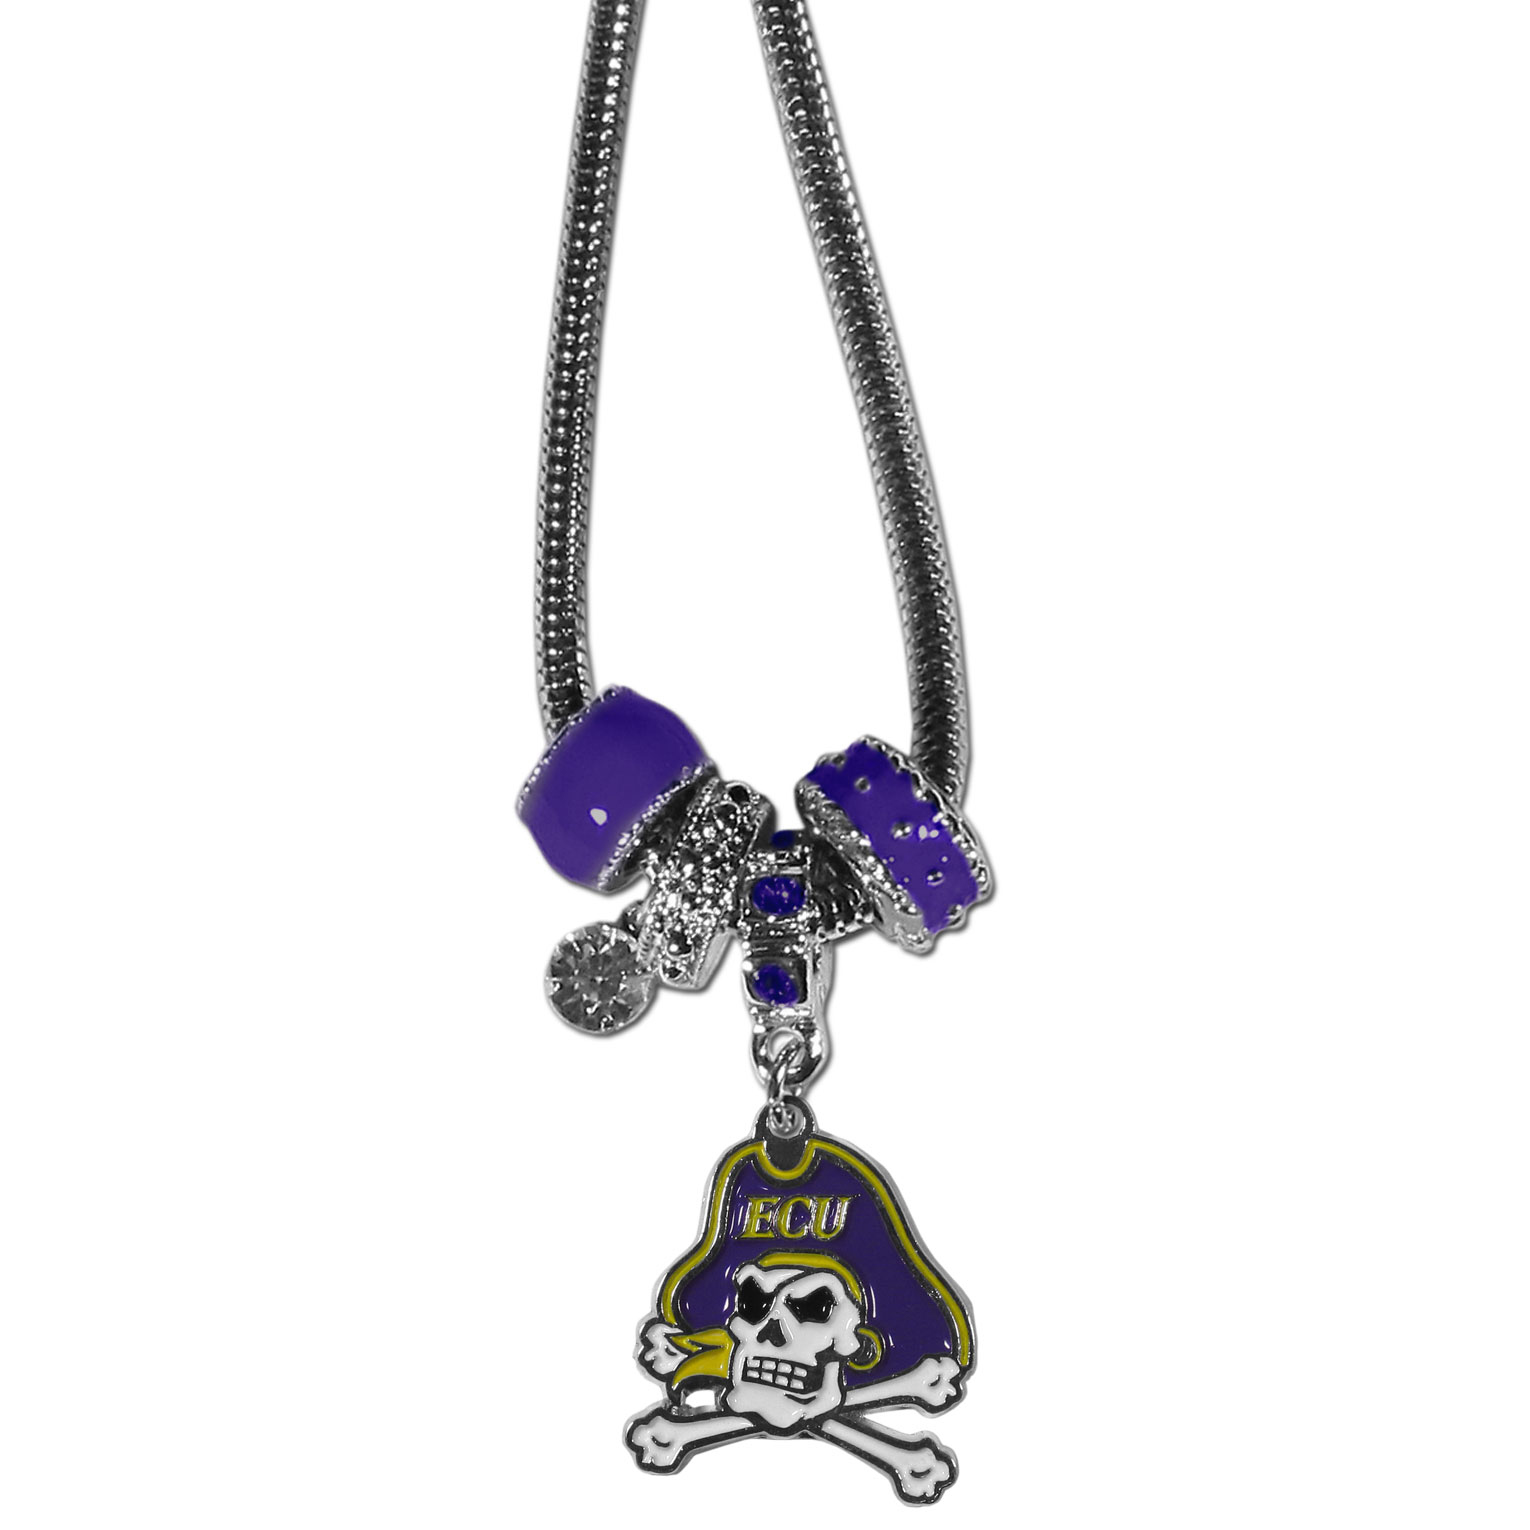 East Carolina Pirates Euro Bead Necklace - We have combined the wildly popular Euro style beads with your favorite team to create our East Carolina Pirates bead necklace. The 18 inch snake chain features 4 Euro beads with enameled team colors and rhinestone accents with a high polish, nickel free charm and rhinestone charm. Perfect way to show off your team pride.